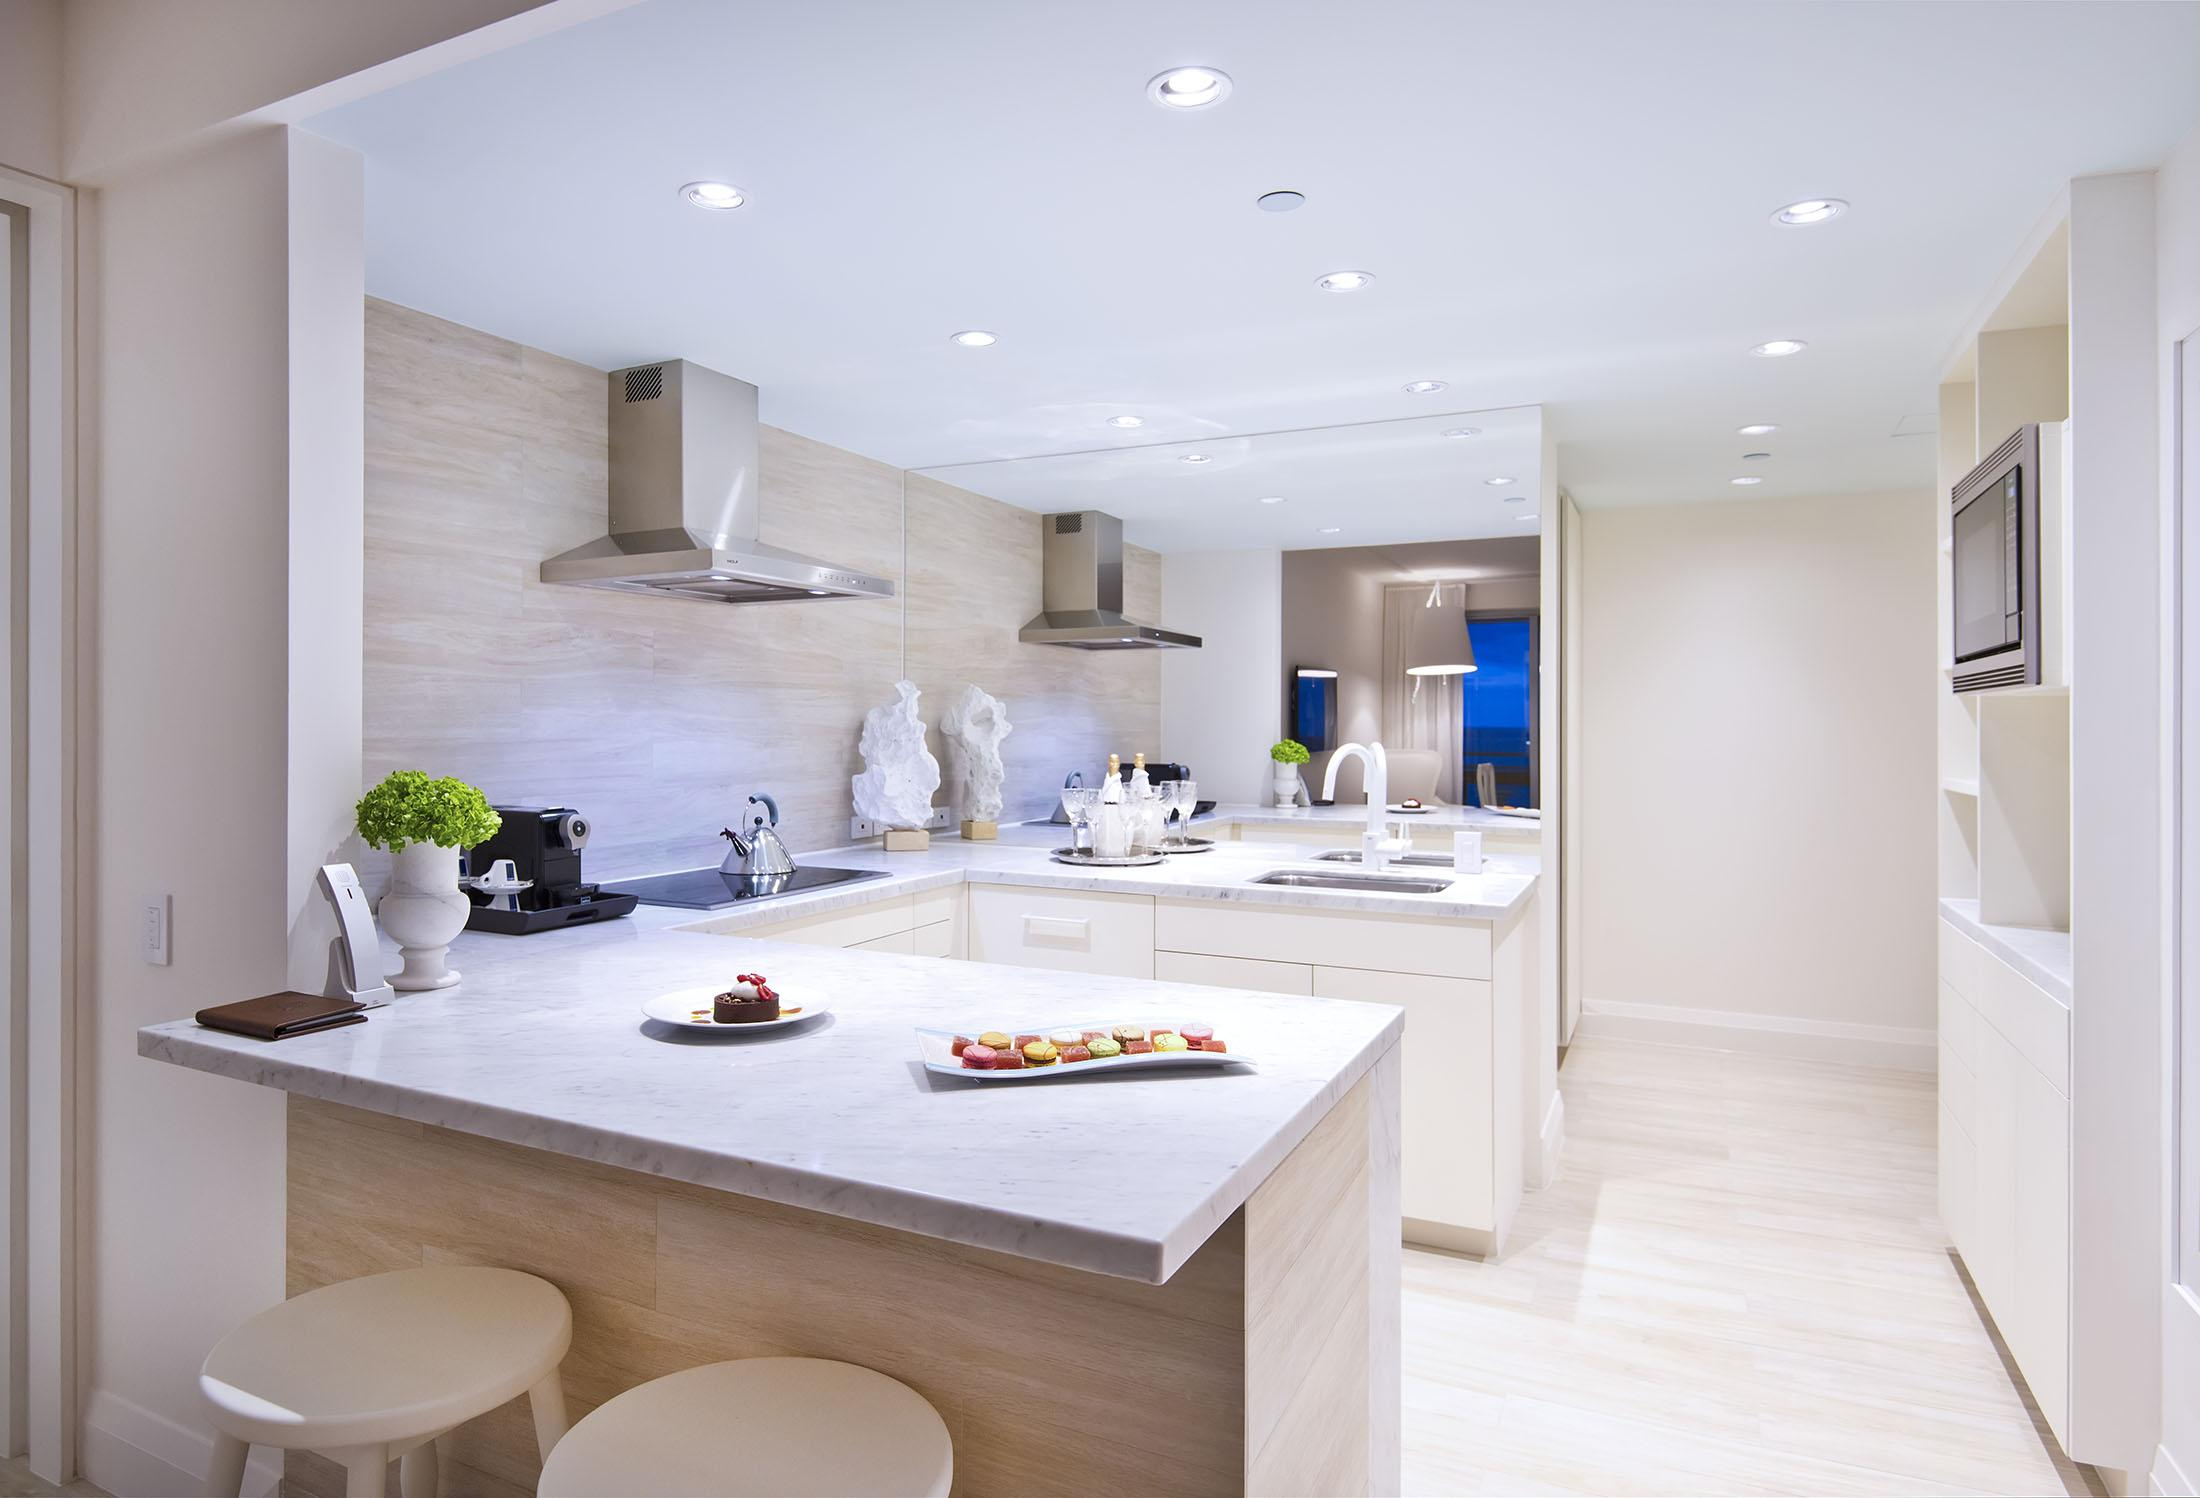 A white kitchen with bar stools